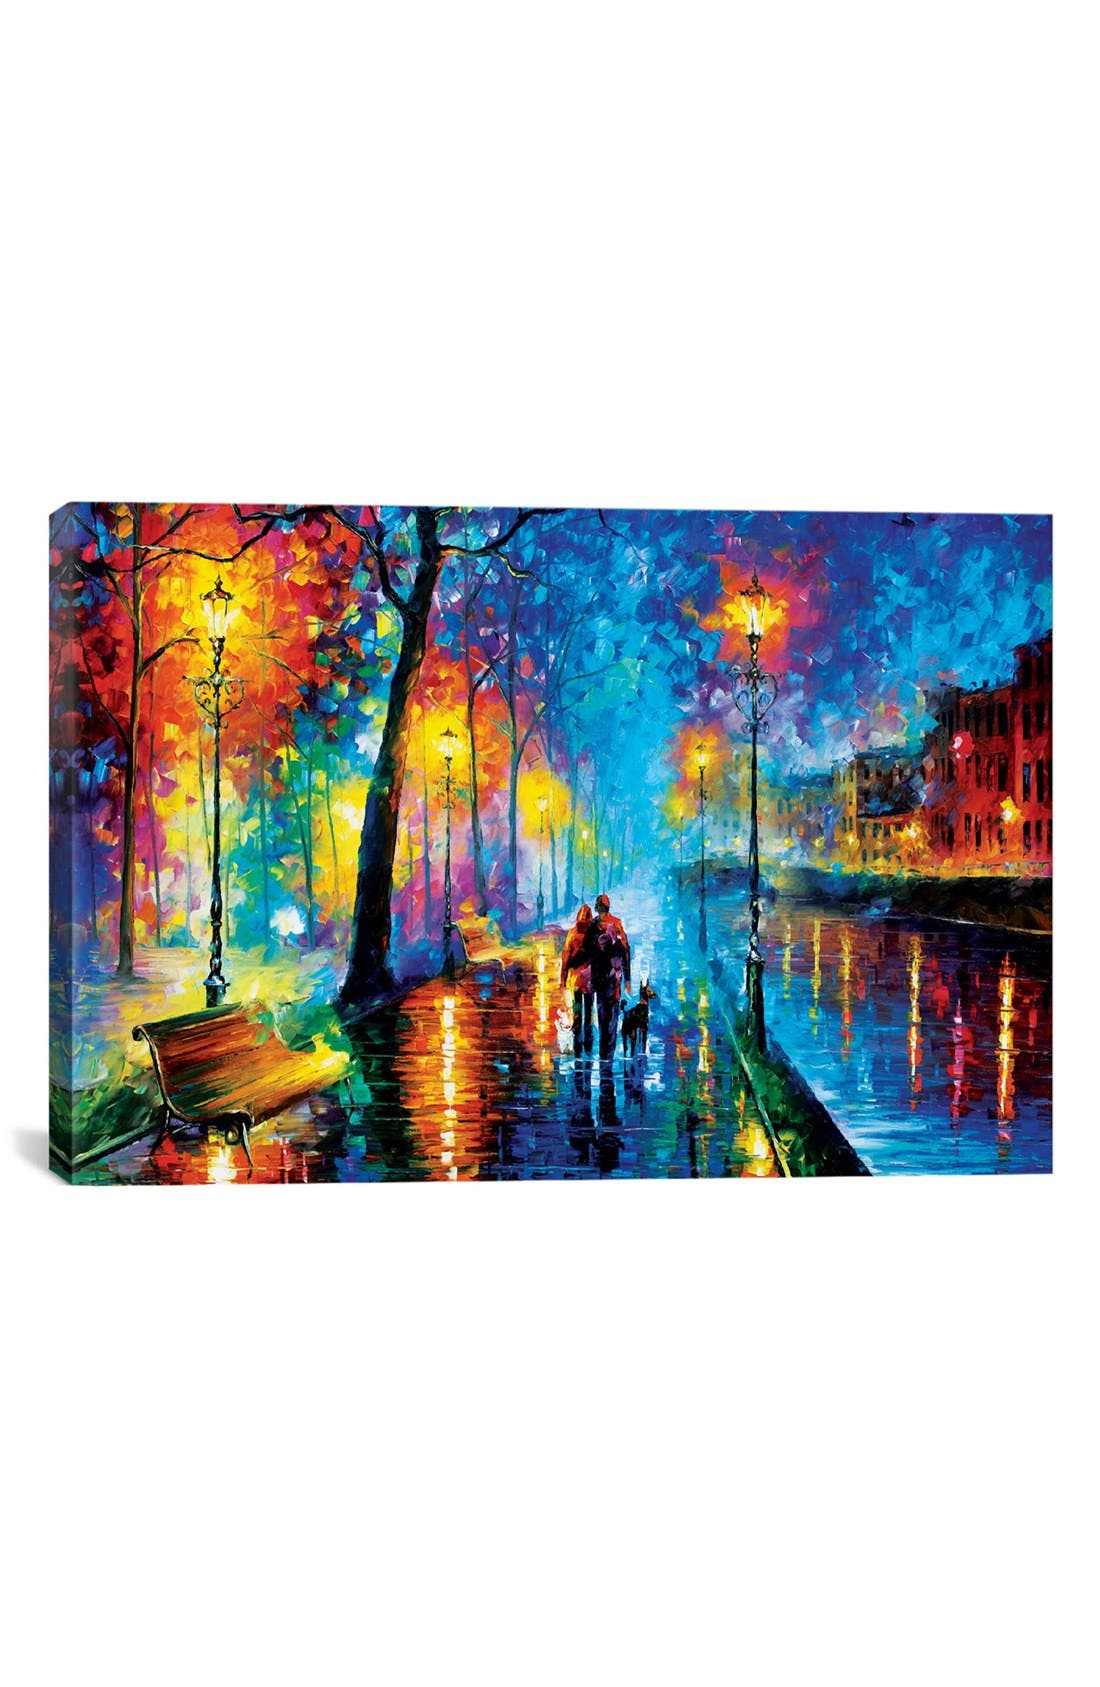 'Melody of Night' Giclée Print Canvas Art,                             Main thumbnail 1, color,                             BLUE